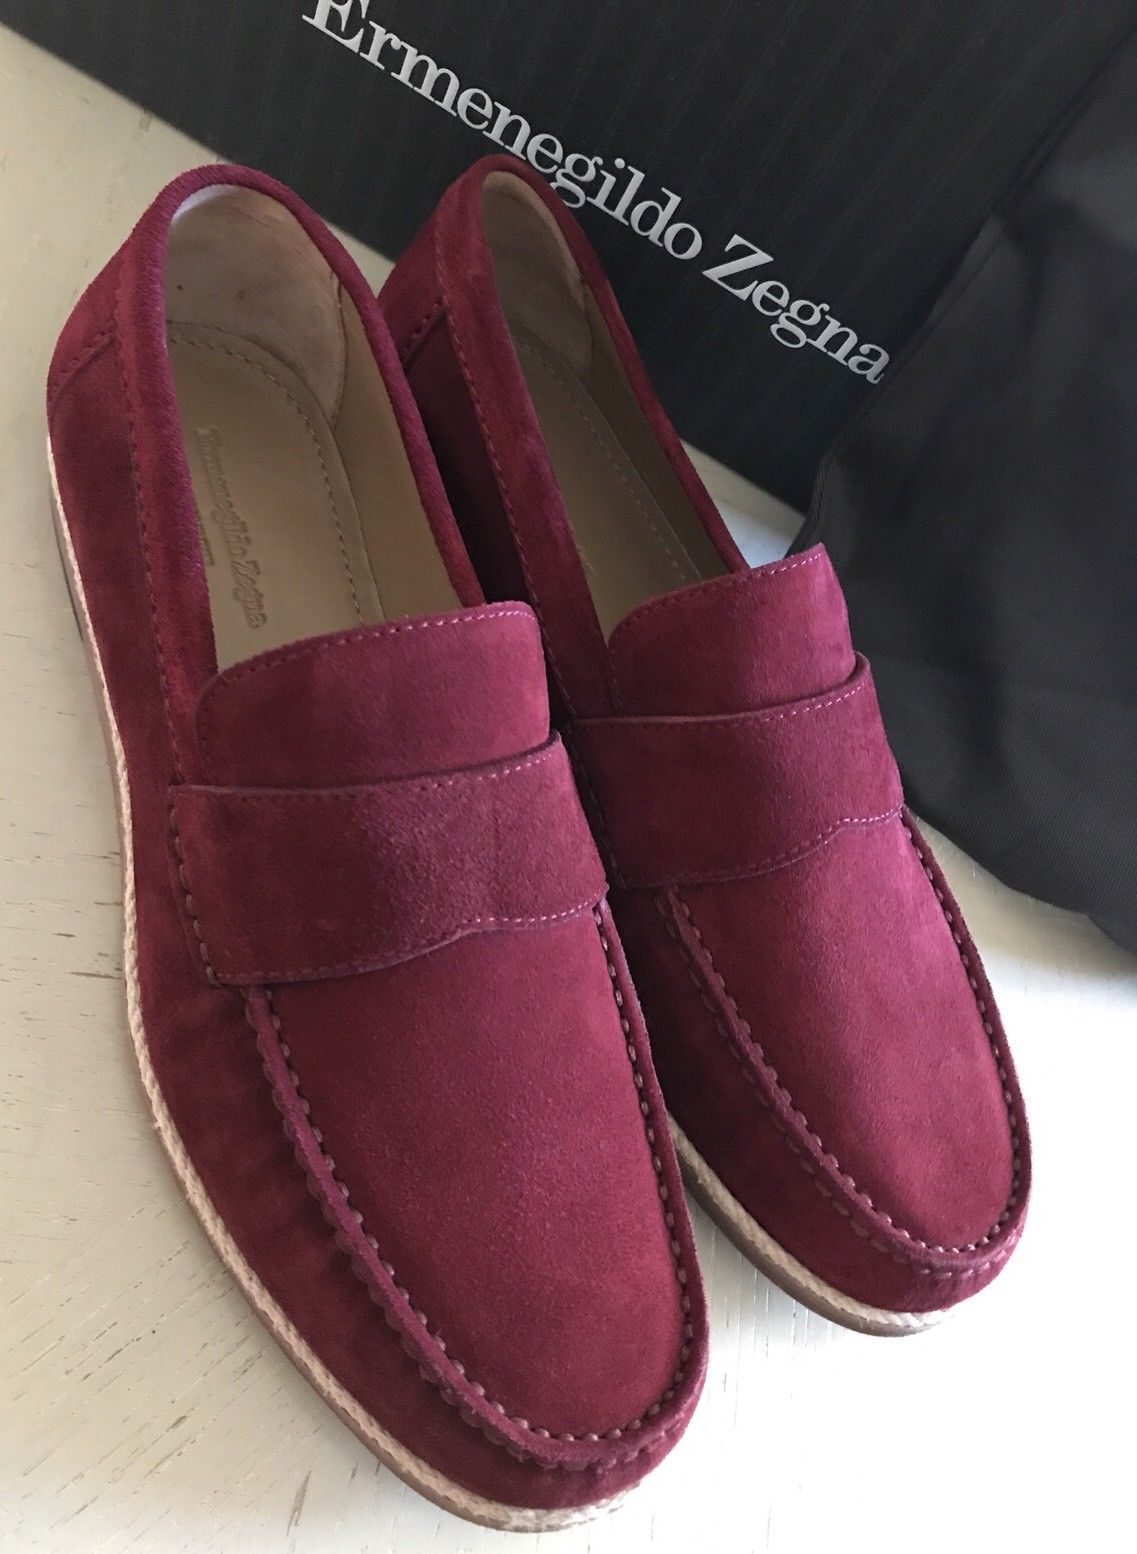 New $595 Ermenegildo Zegna Suede Loafers Shoes MD Red/Burgundy 9.5 US ( 42.5 E ) - BAYSUPERSTORE